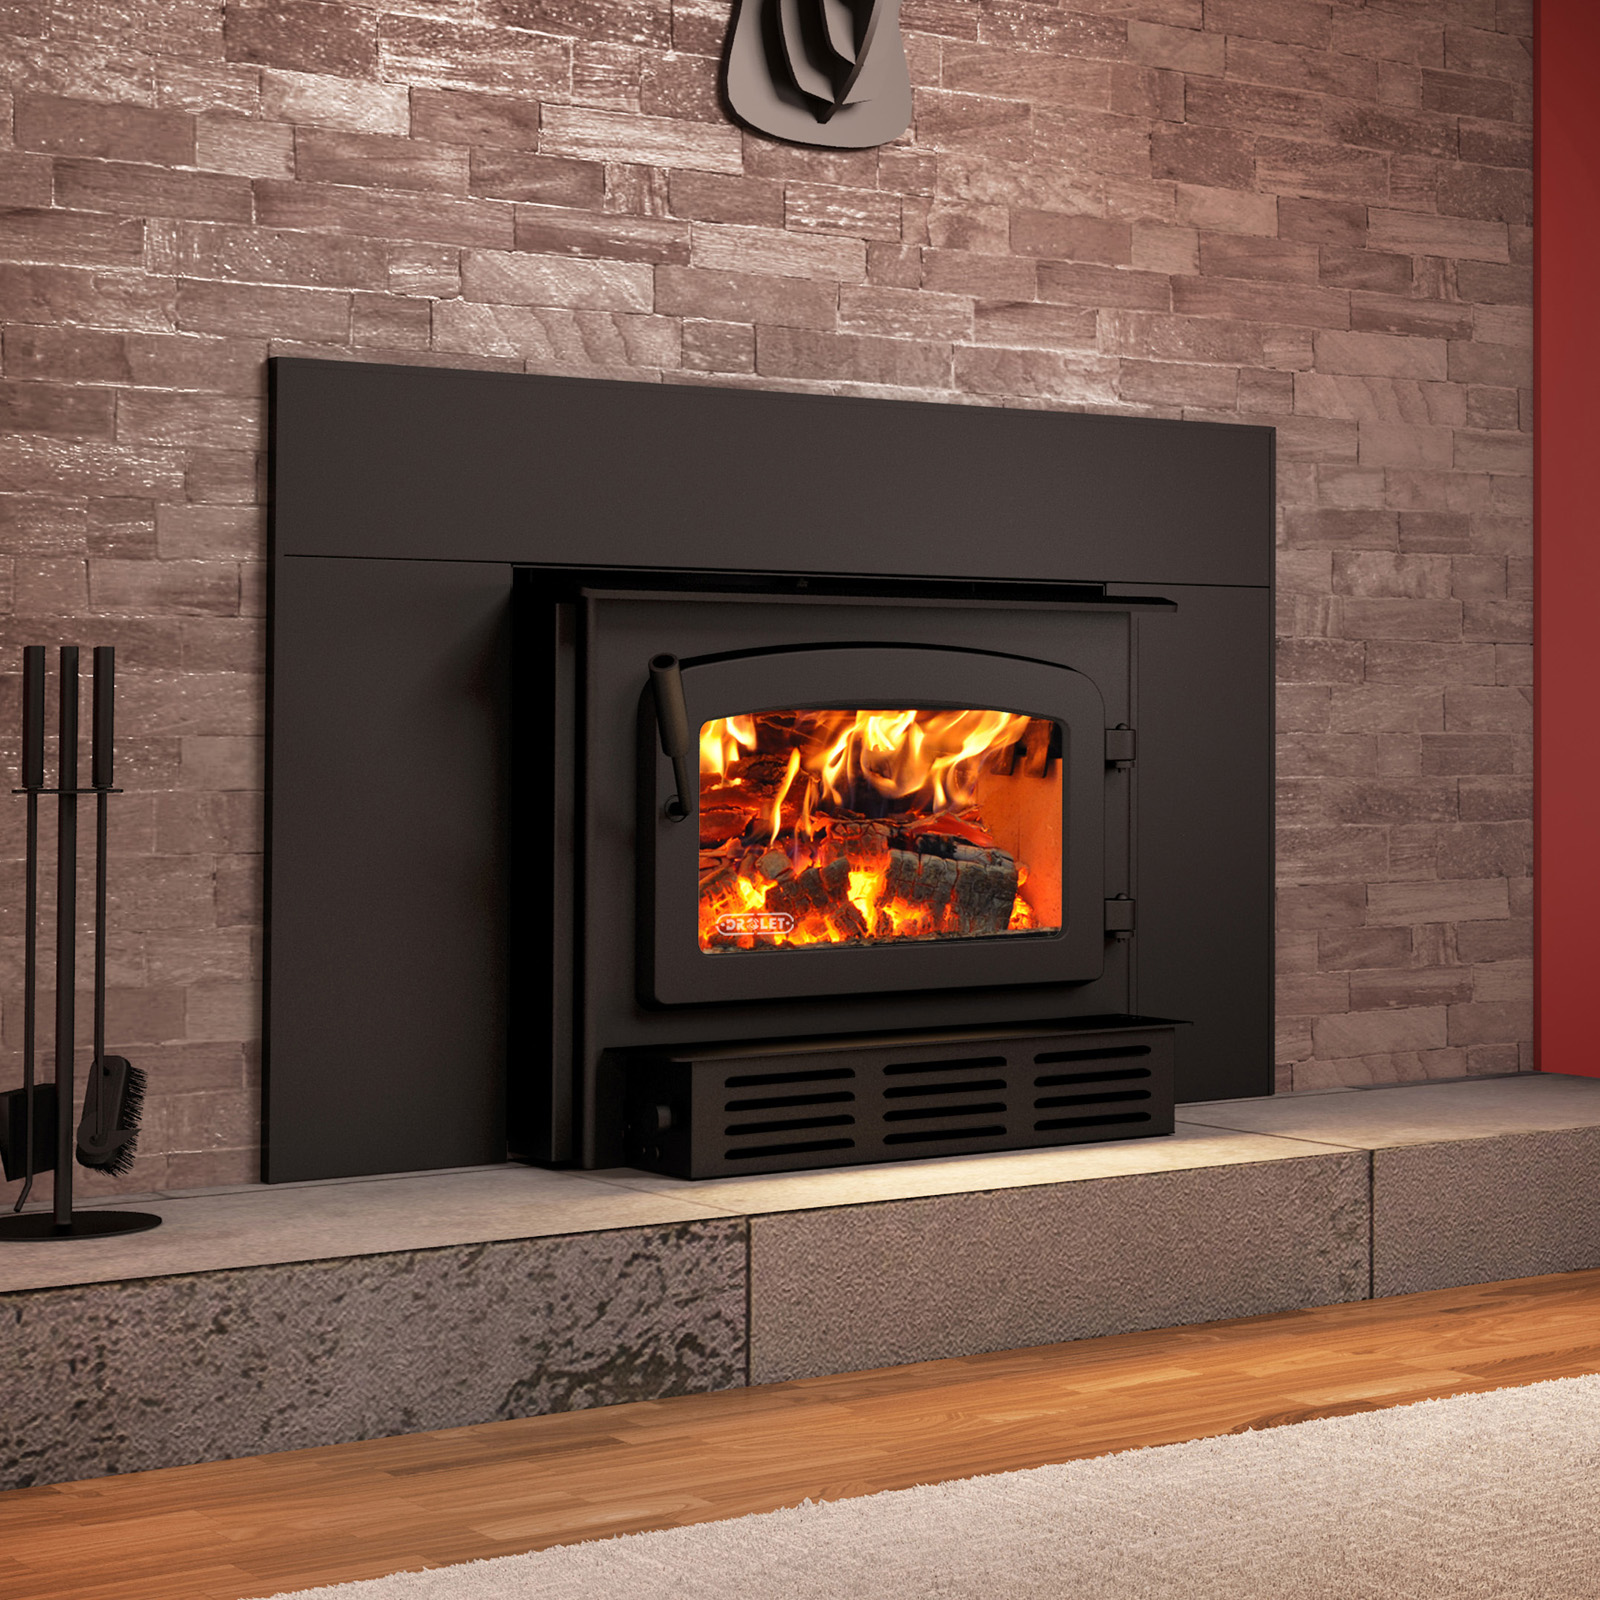 fireplaces on hayneedle fireplaces for sale